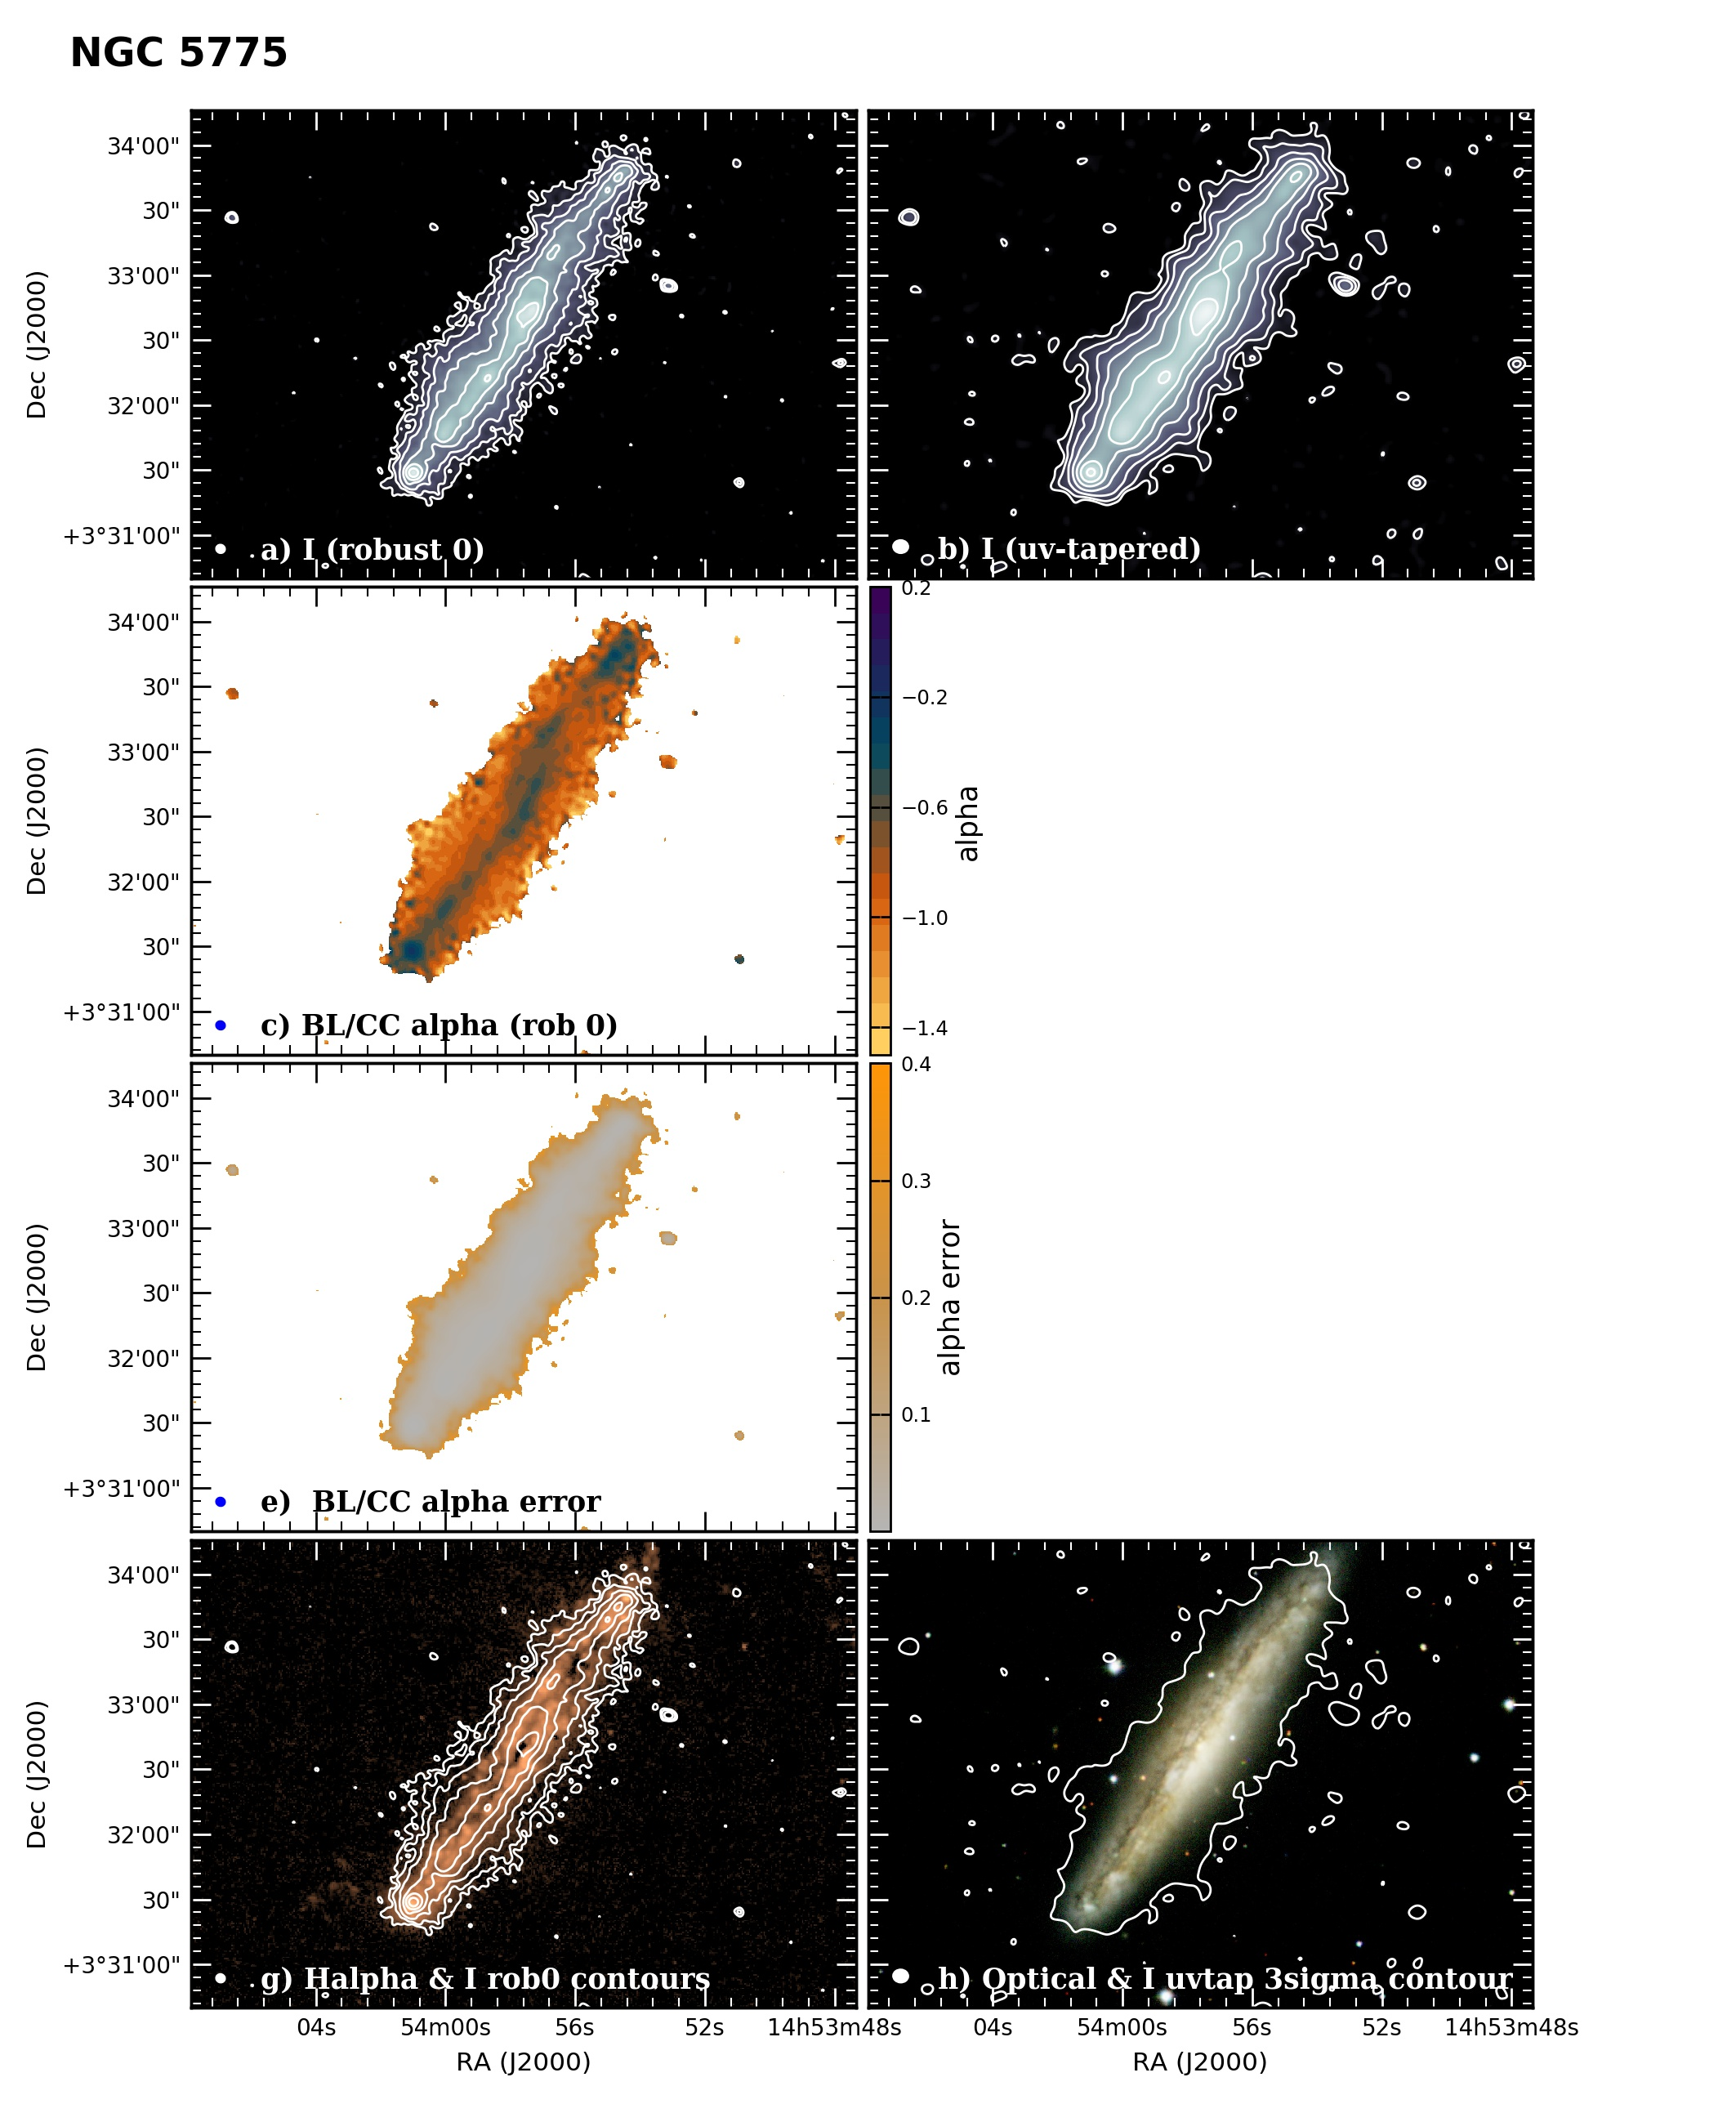 Panel image of NGC5775 from B configuration data release III (Irwin et al. 2019)